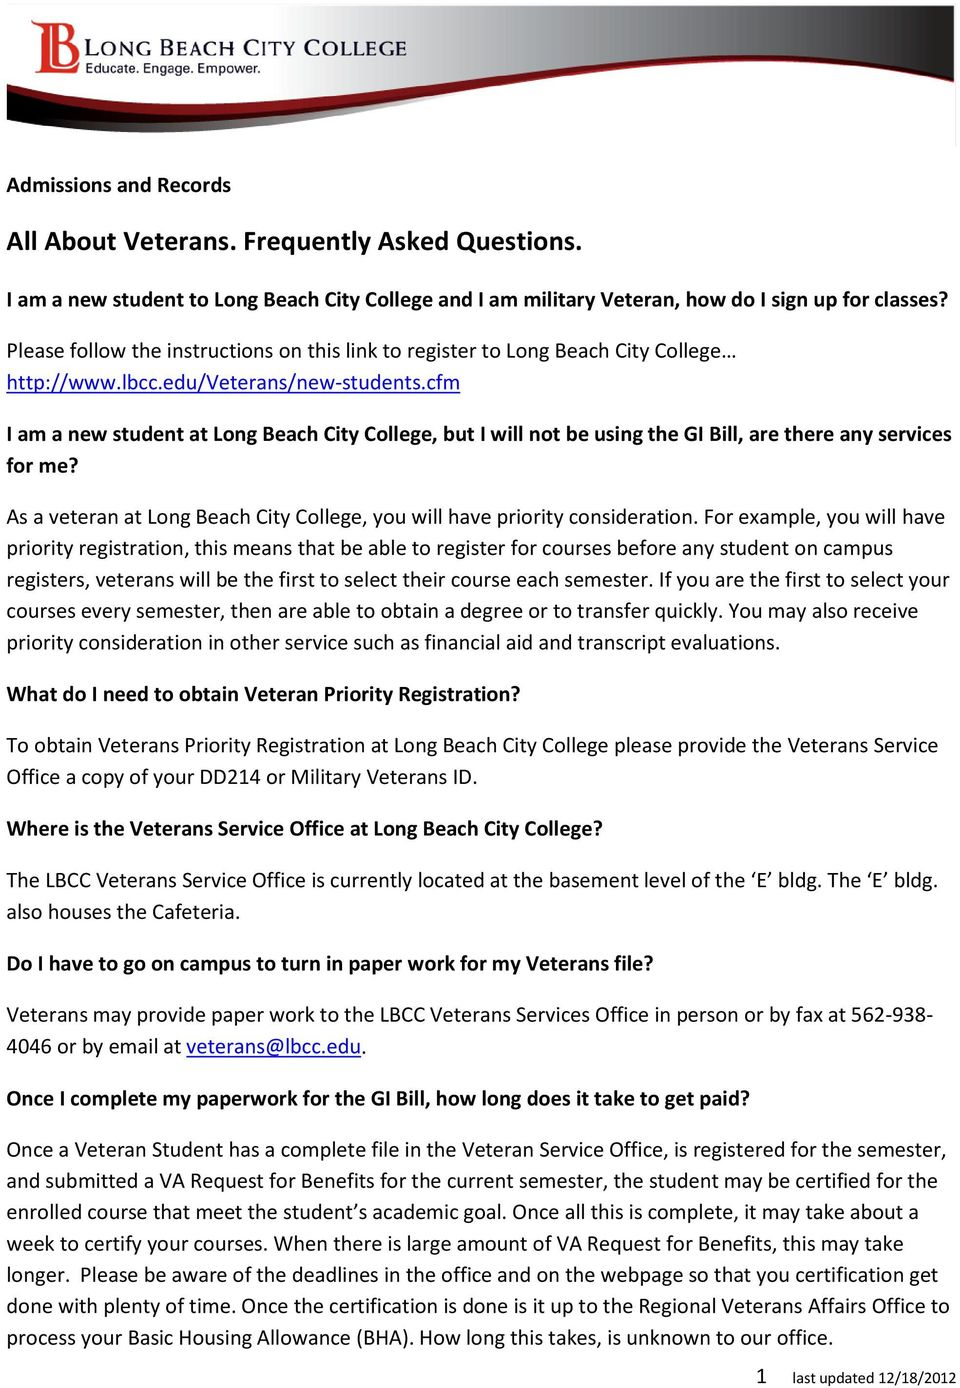 As a veteran at Long Beach City College, you will have priority consideration.